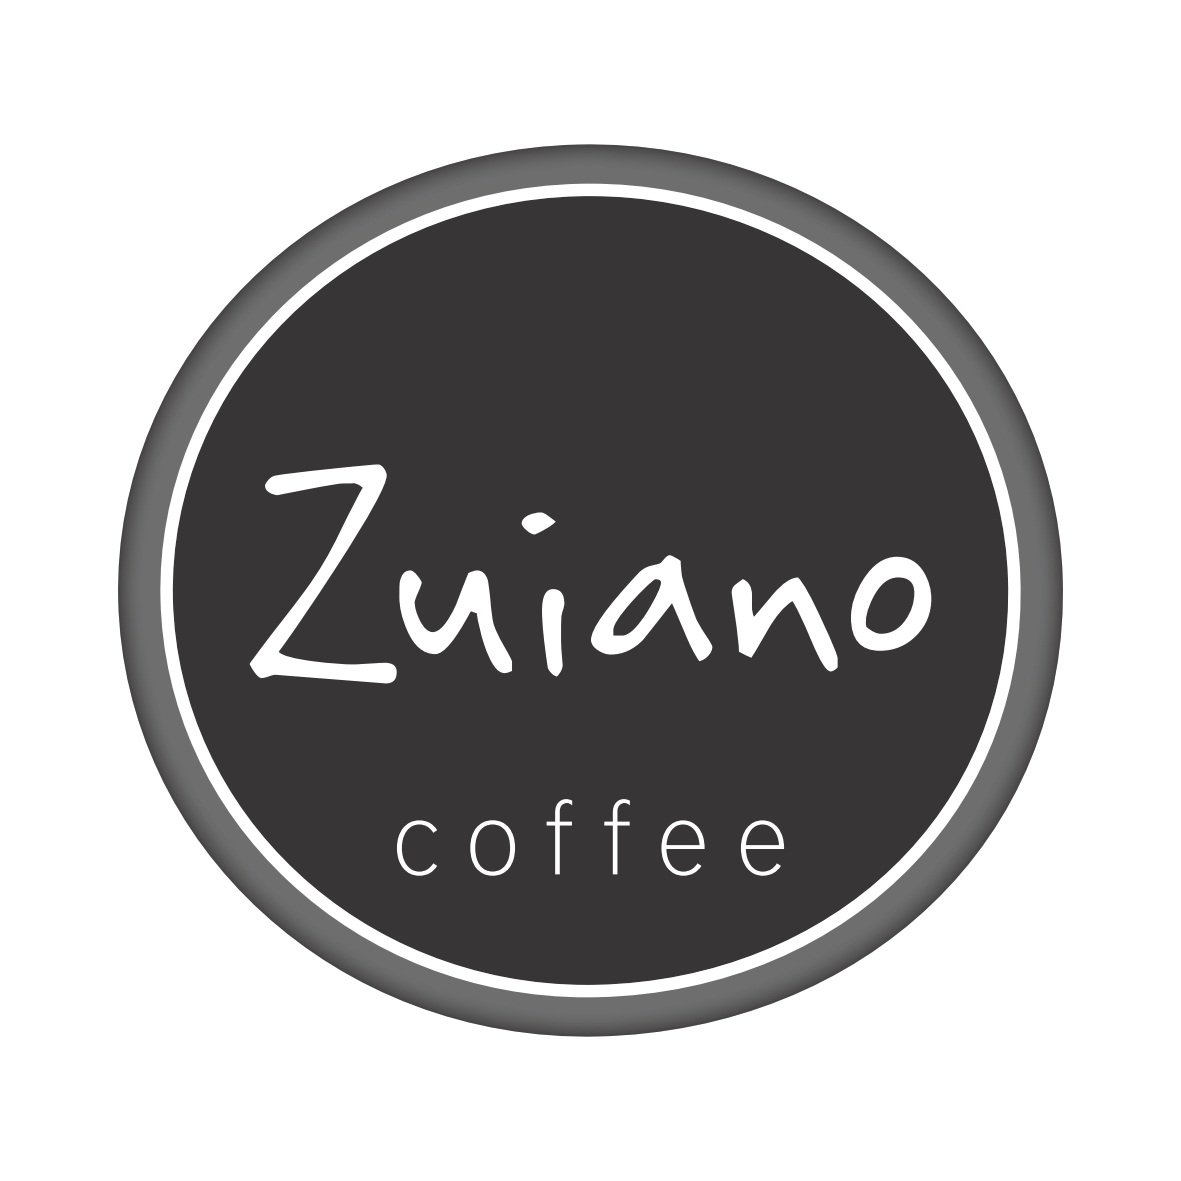 Zuiano: Emperor 10 Count; Nespresso®, Delonghi® - compatible: Amazon.com: Grocery & Gourmet Food